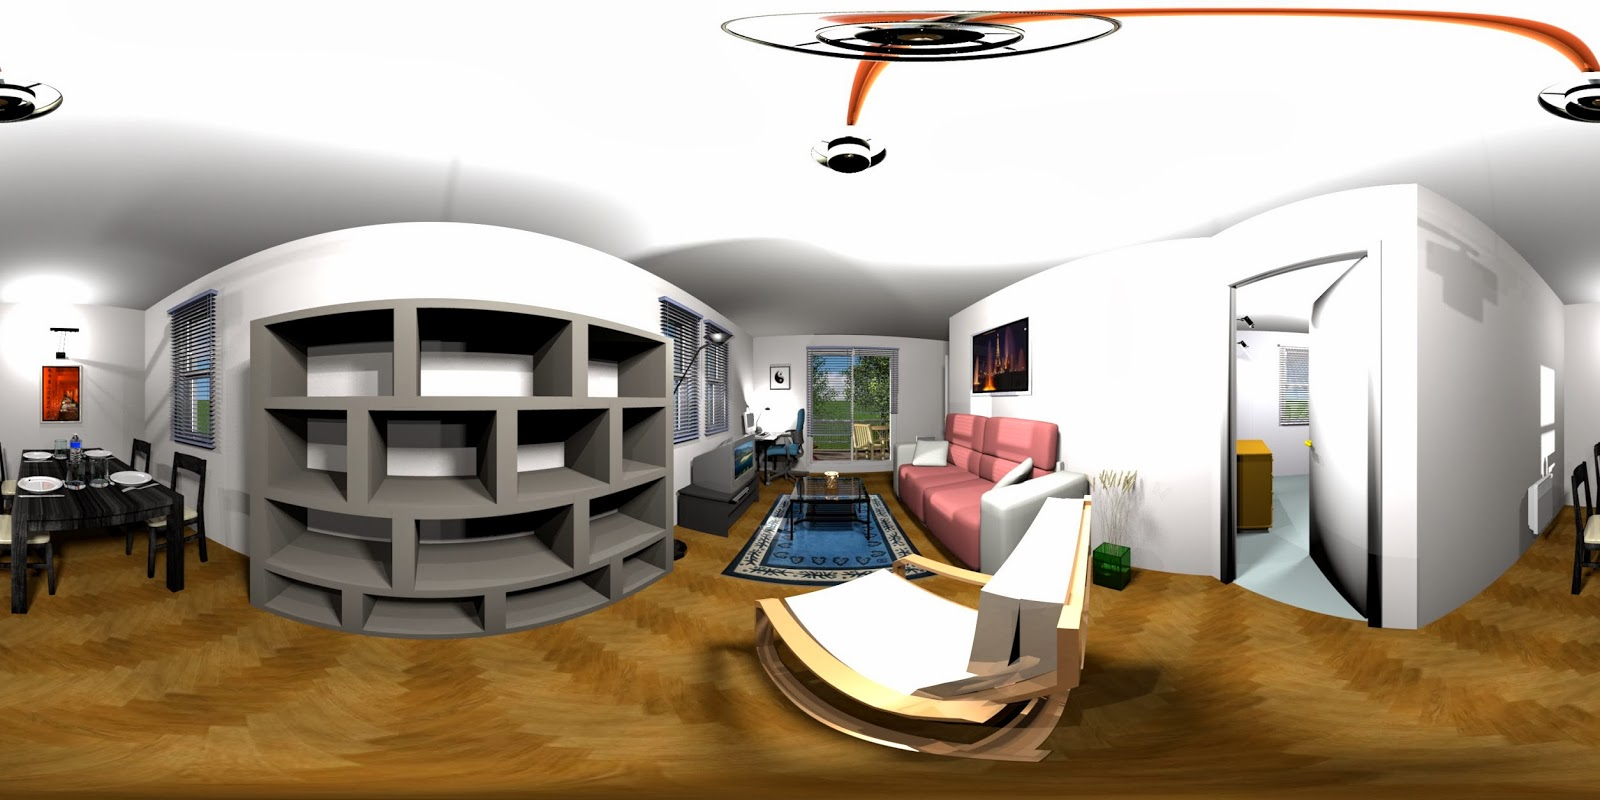 Dise o de interiores 3d gratis for Diseno interiores 3d